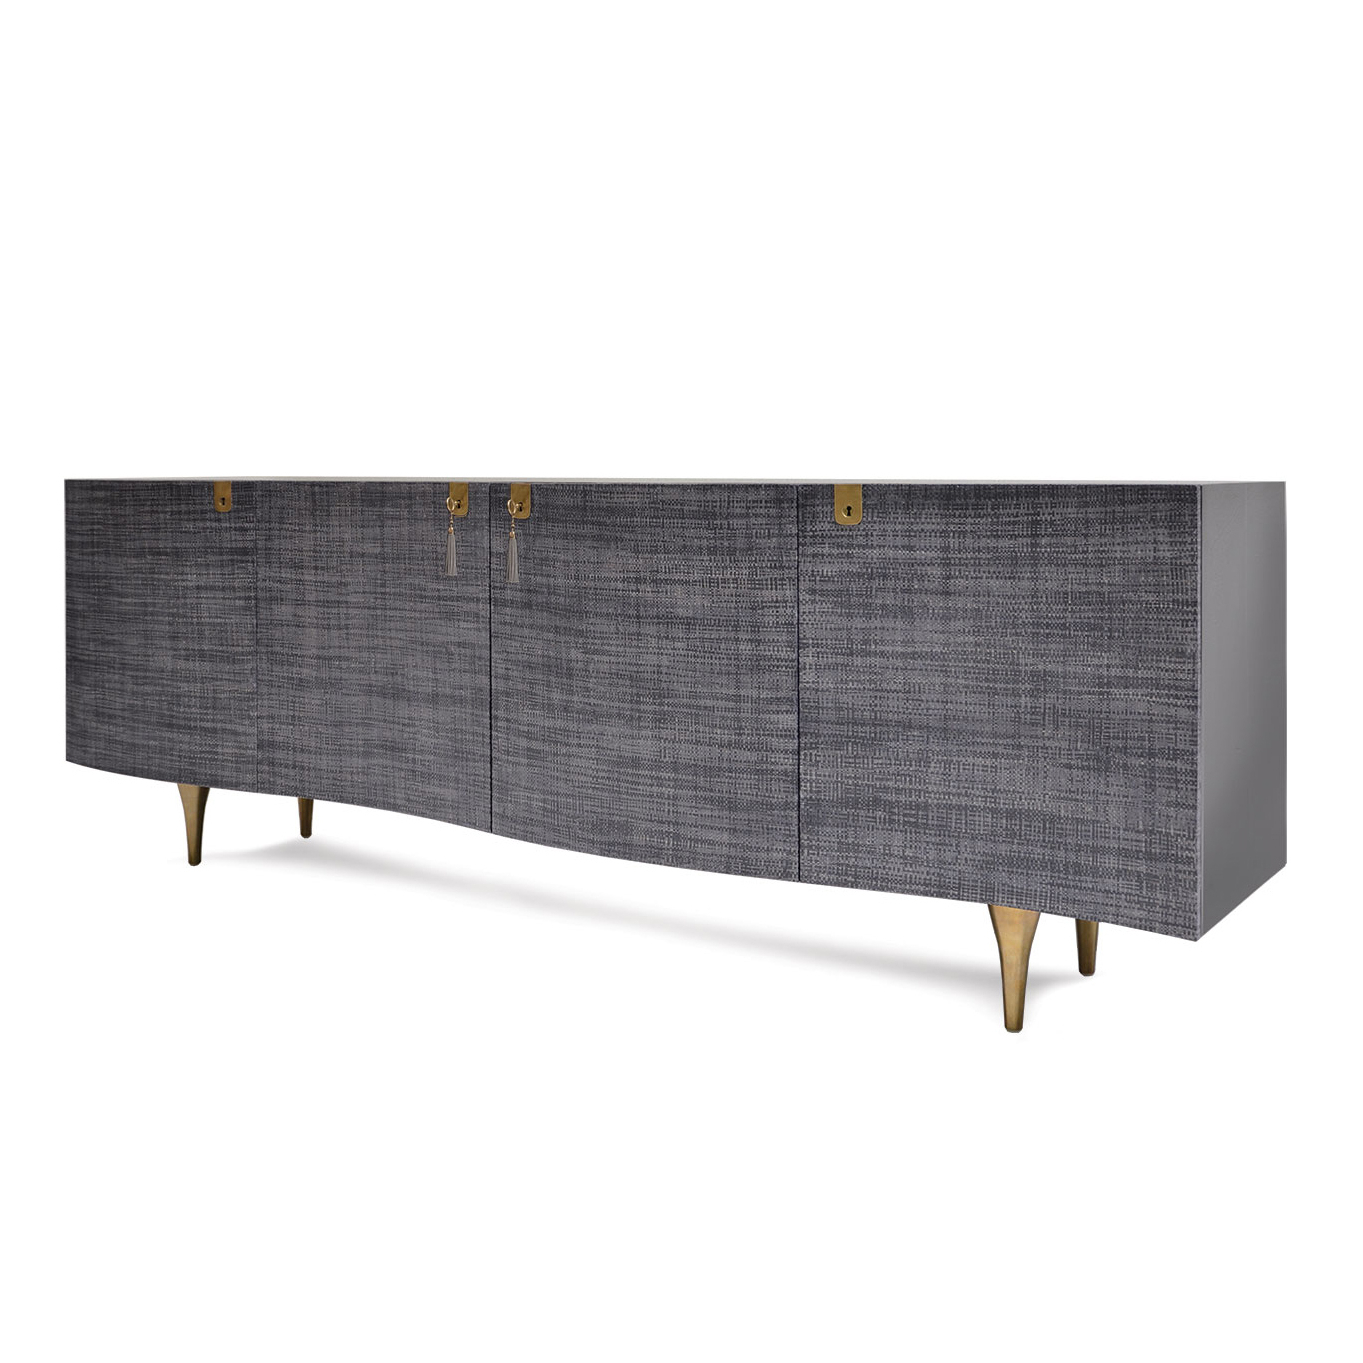 Popular Sideboards Archives – Coup D'etat Inside Damian Sideboards (View 14 of 20)